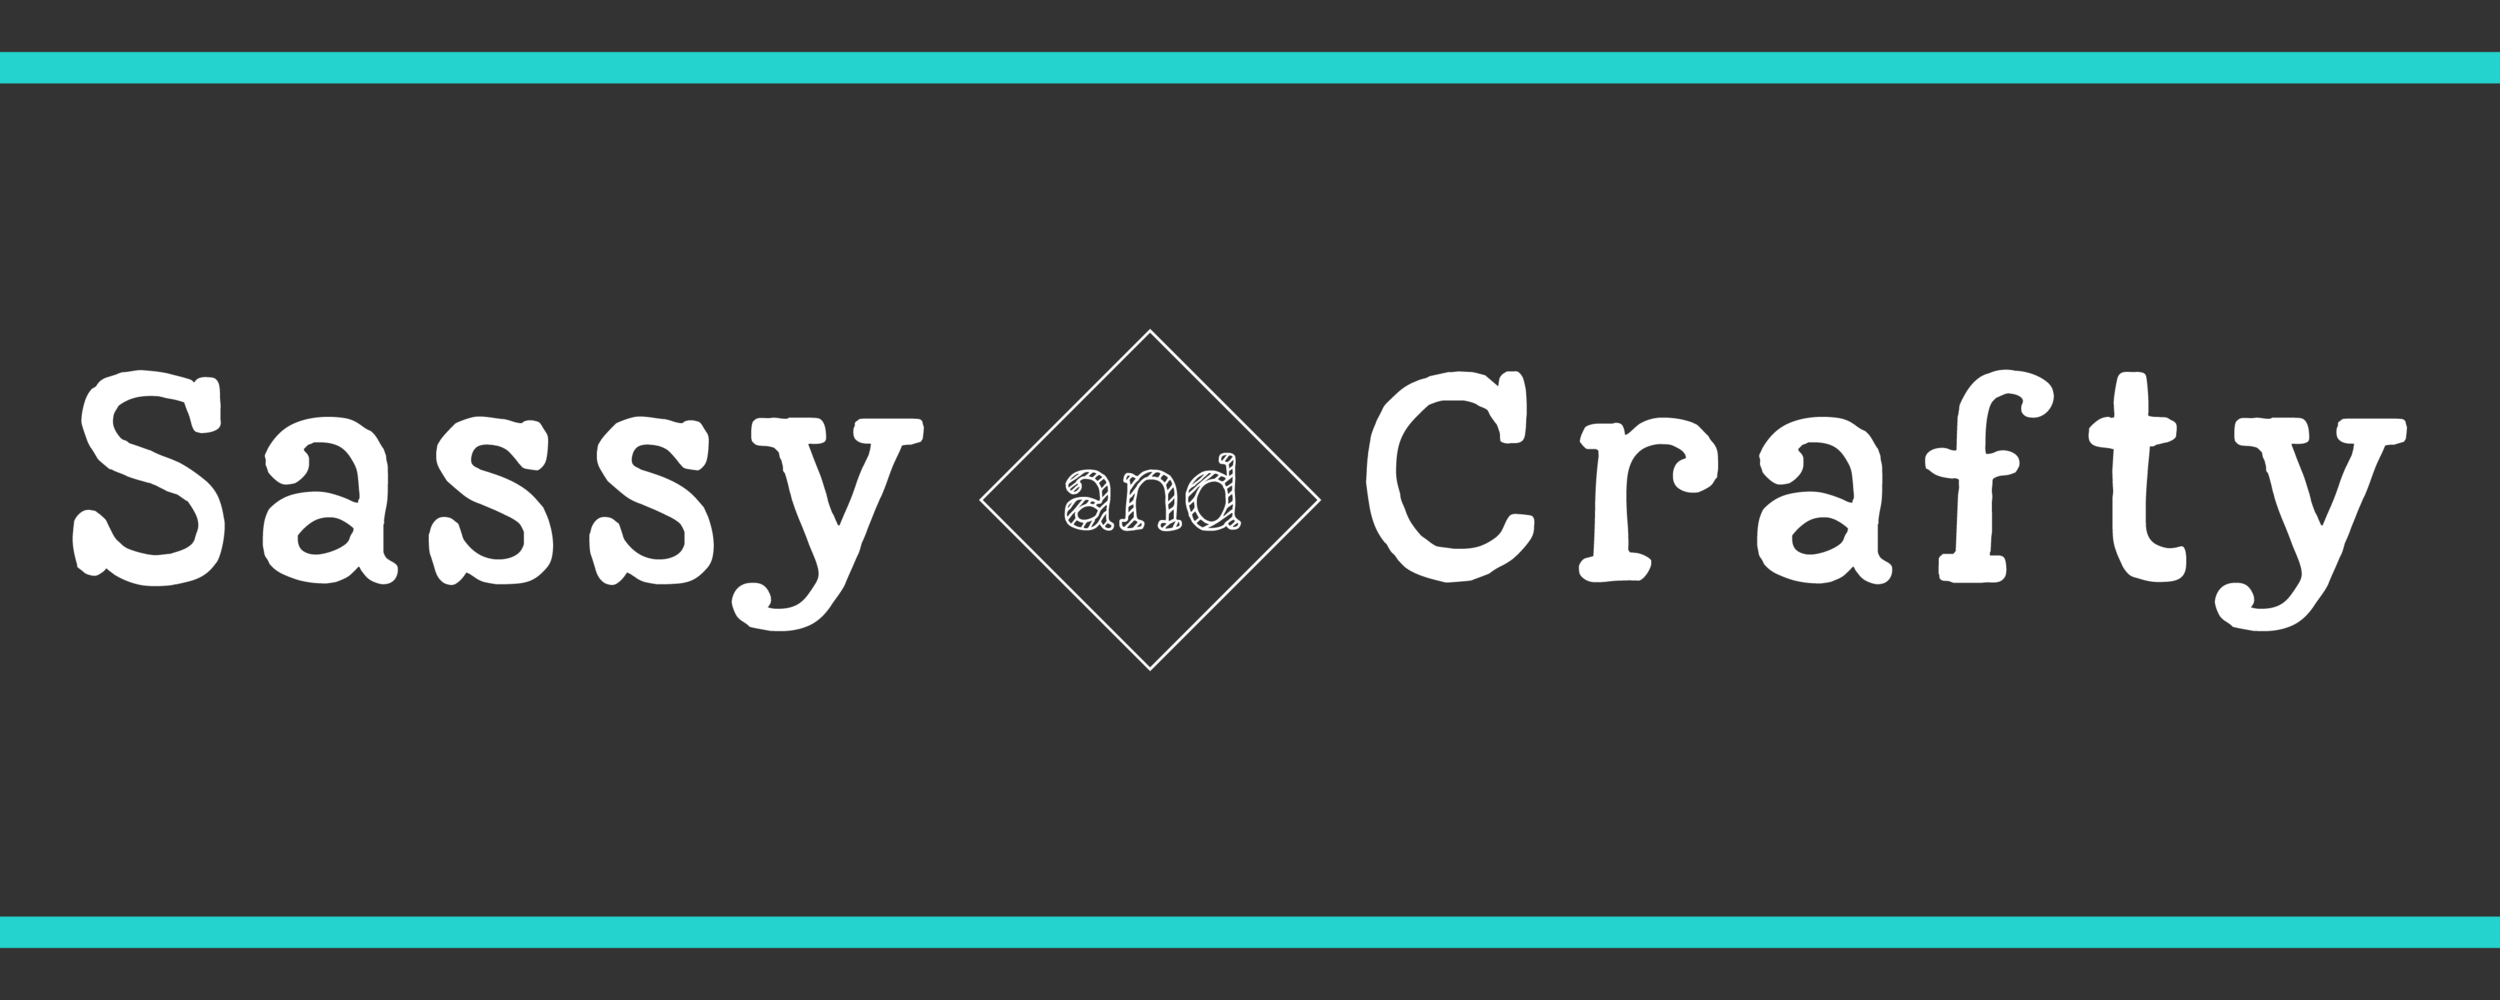 A simple header with an emphasis on the title. Perfect for craft and diy blogs.